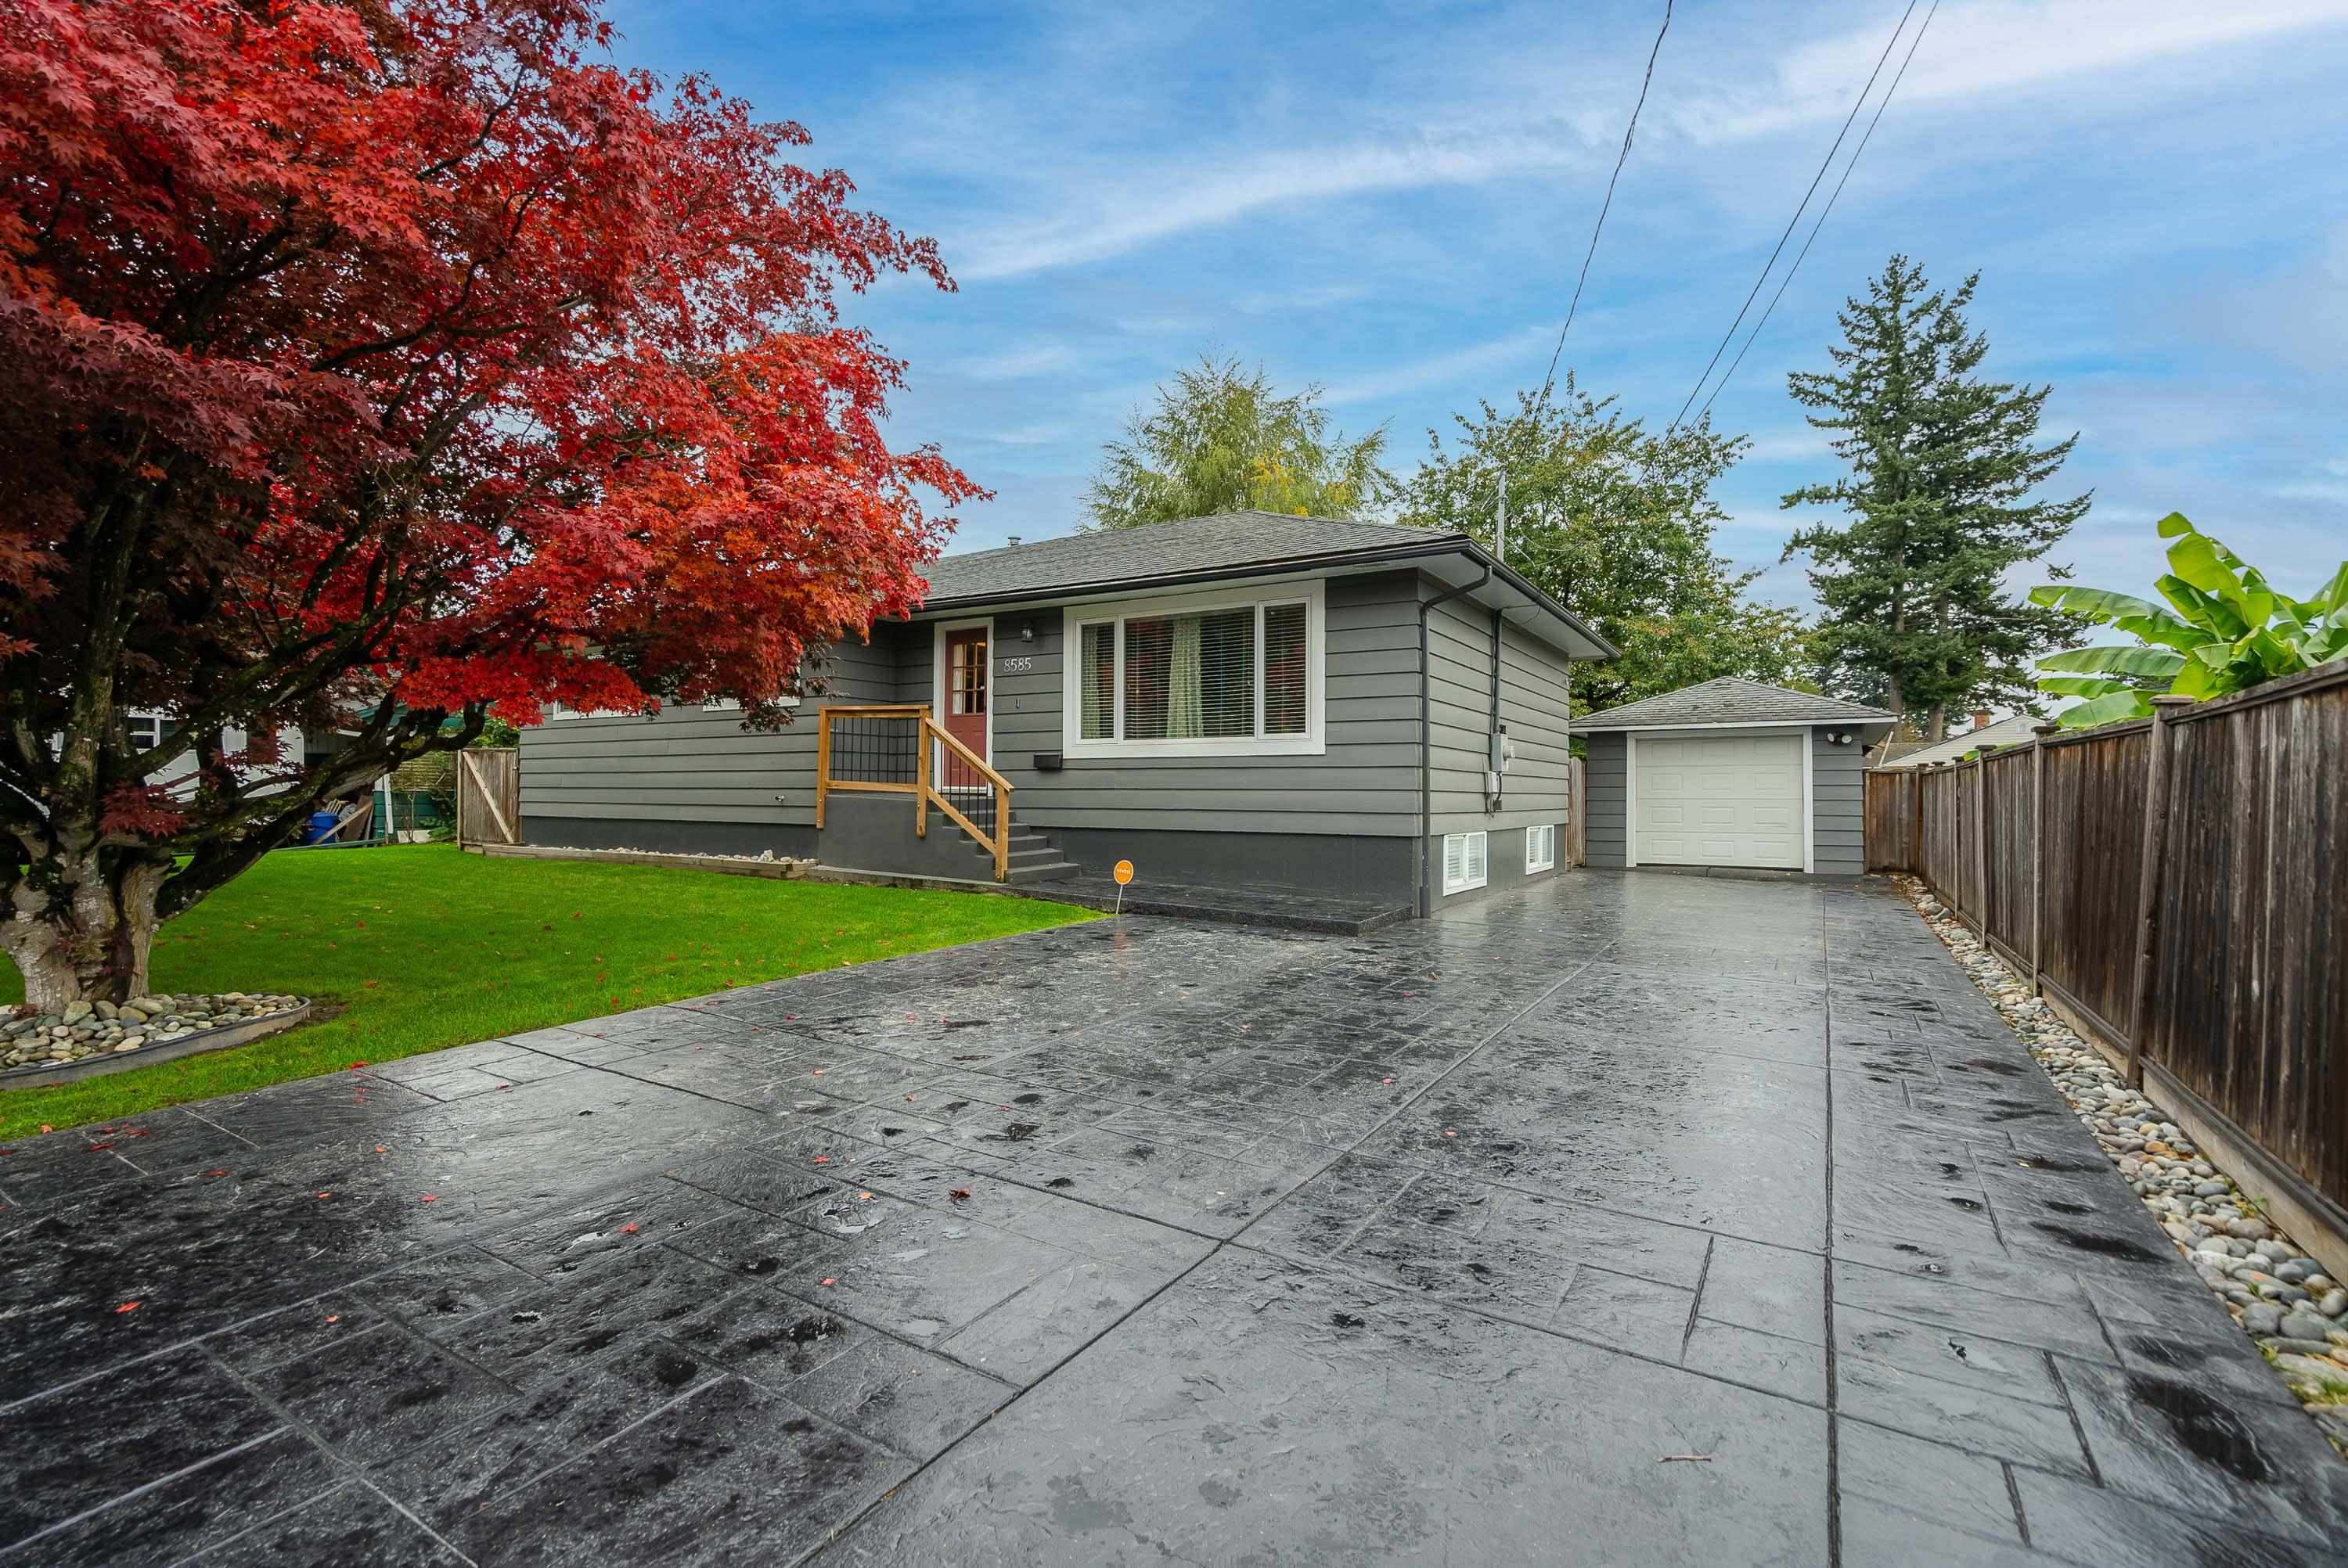 8585 NORMAN CRESCENT - Chilliwack E Young-Yale House/Single Family for sale, 5 Bedrooms (R2627368) - #1